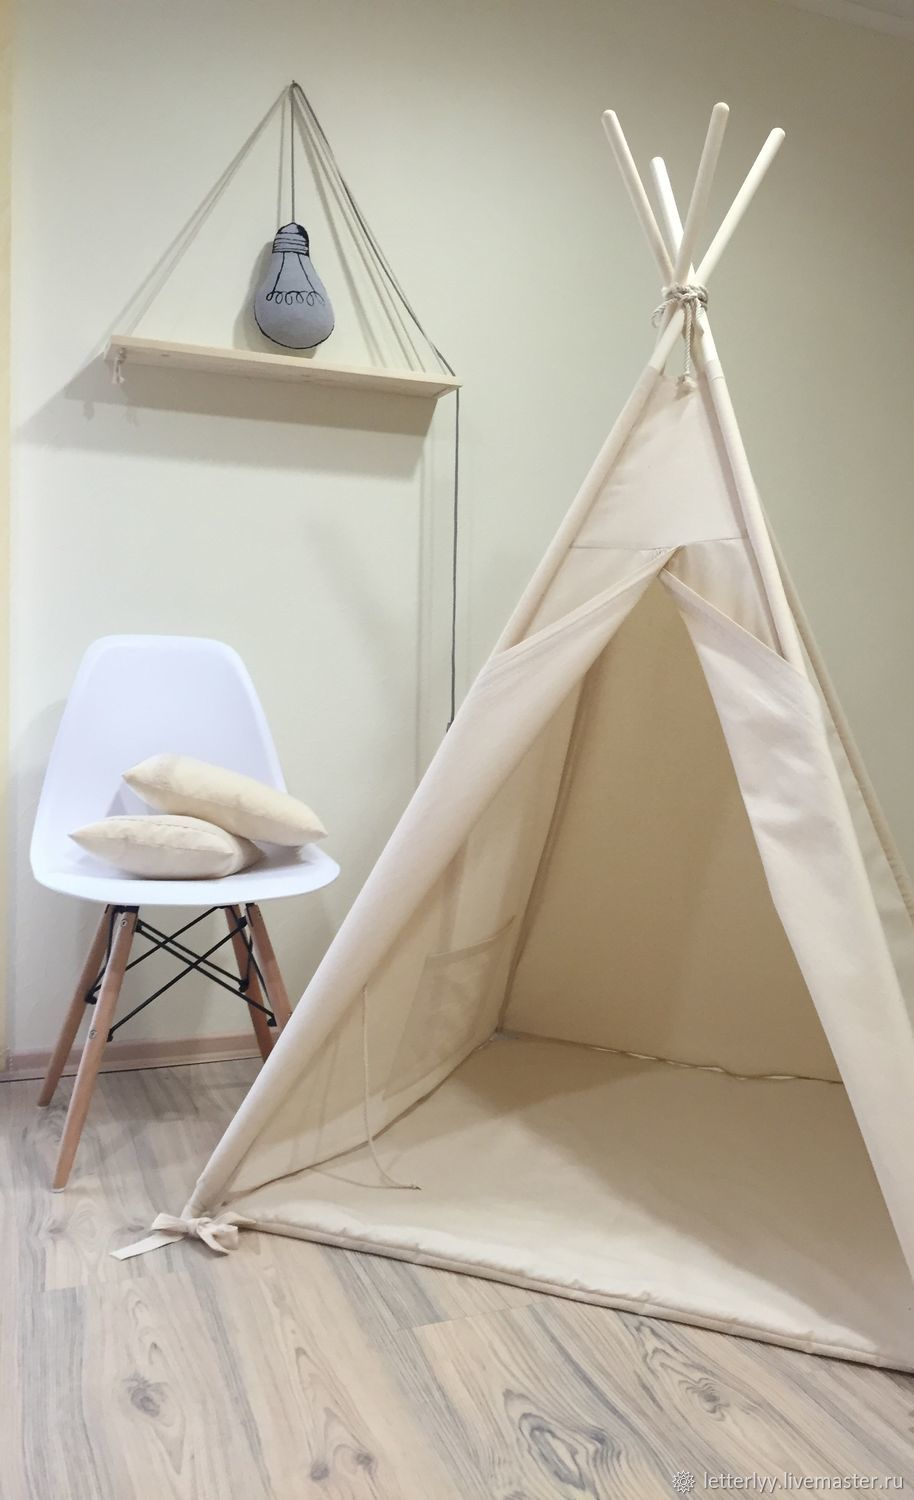 Teepee Kids Tent For Kids Teepee Children